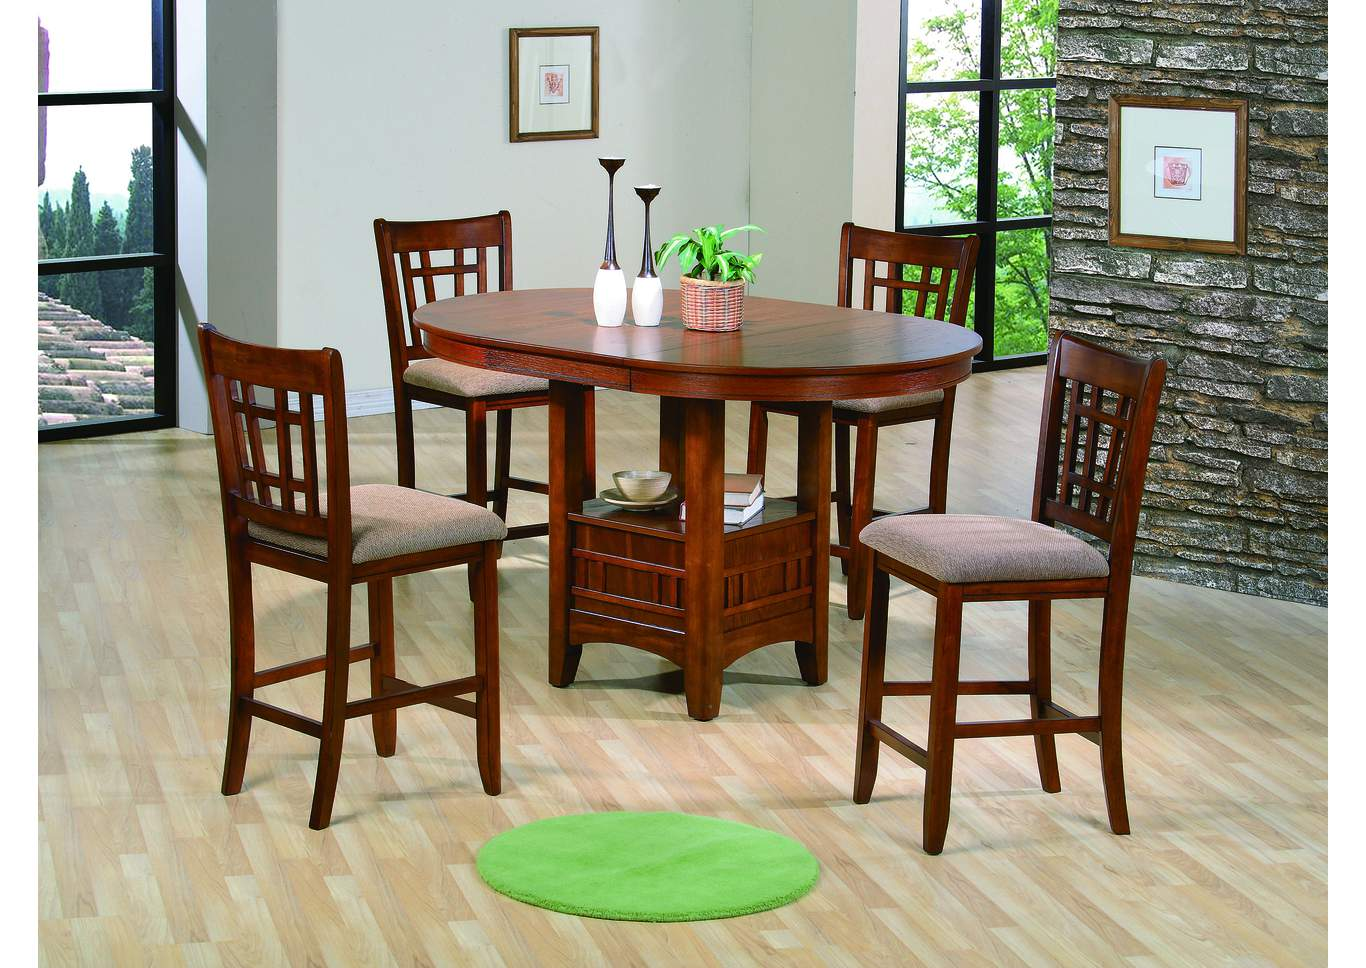 Ware House Furniture Empire Oak Finish Counter Height Dining Table